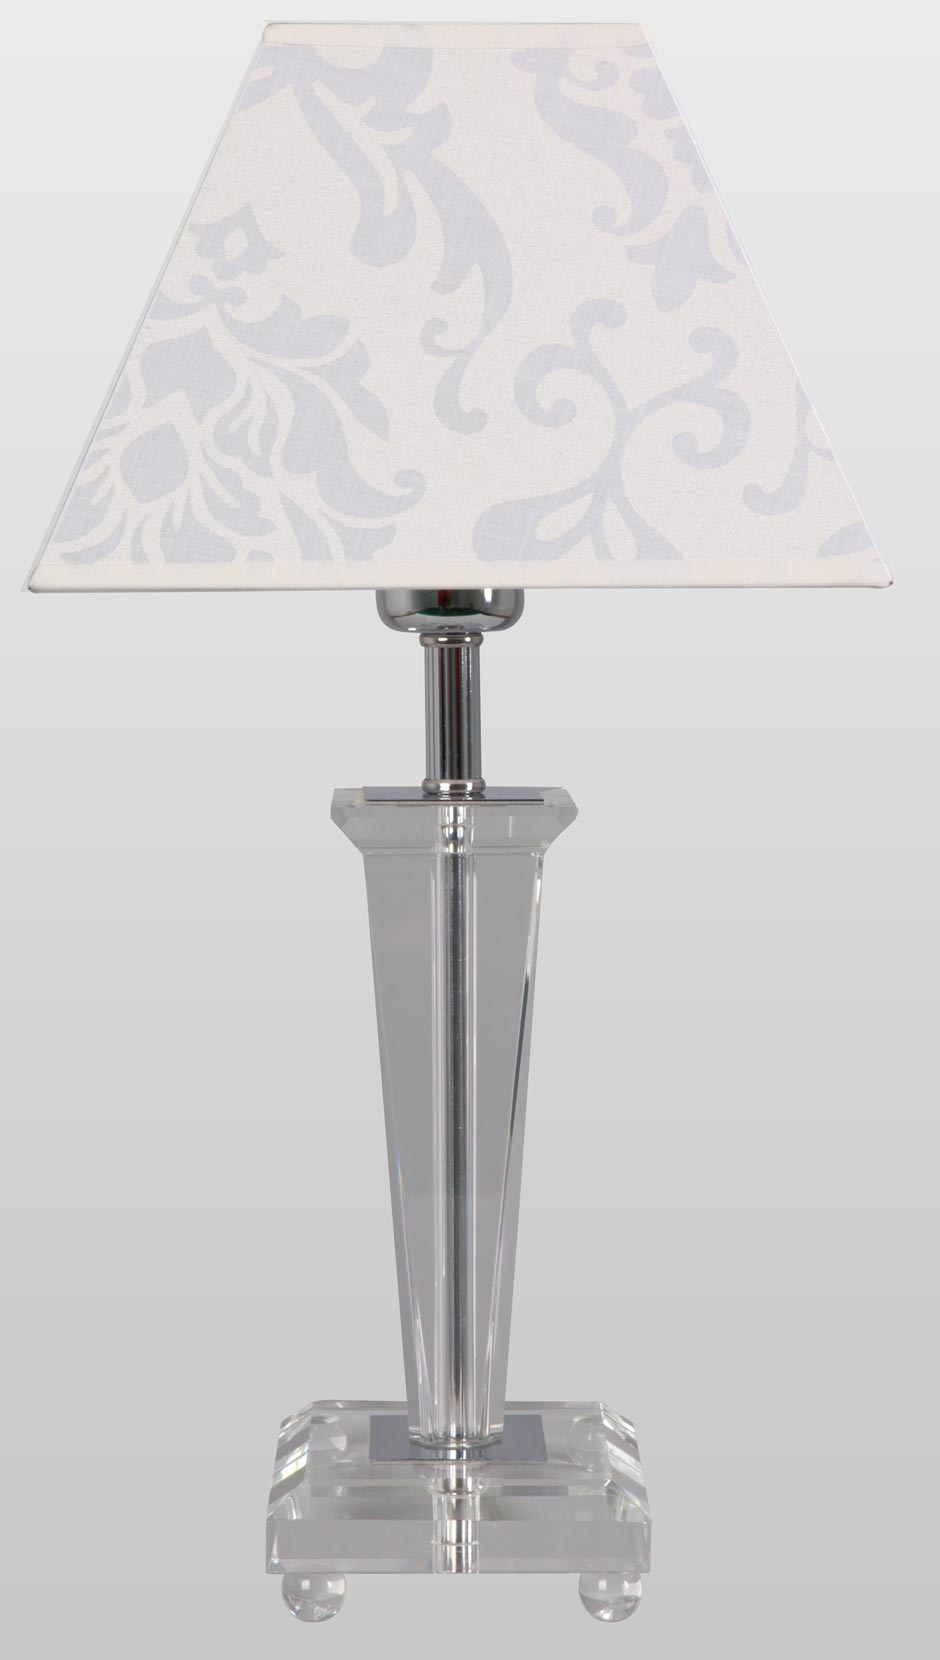 Via TS lampe de table. Le Dauphin.